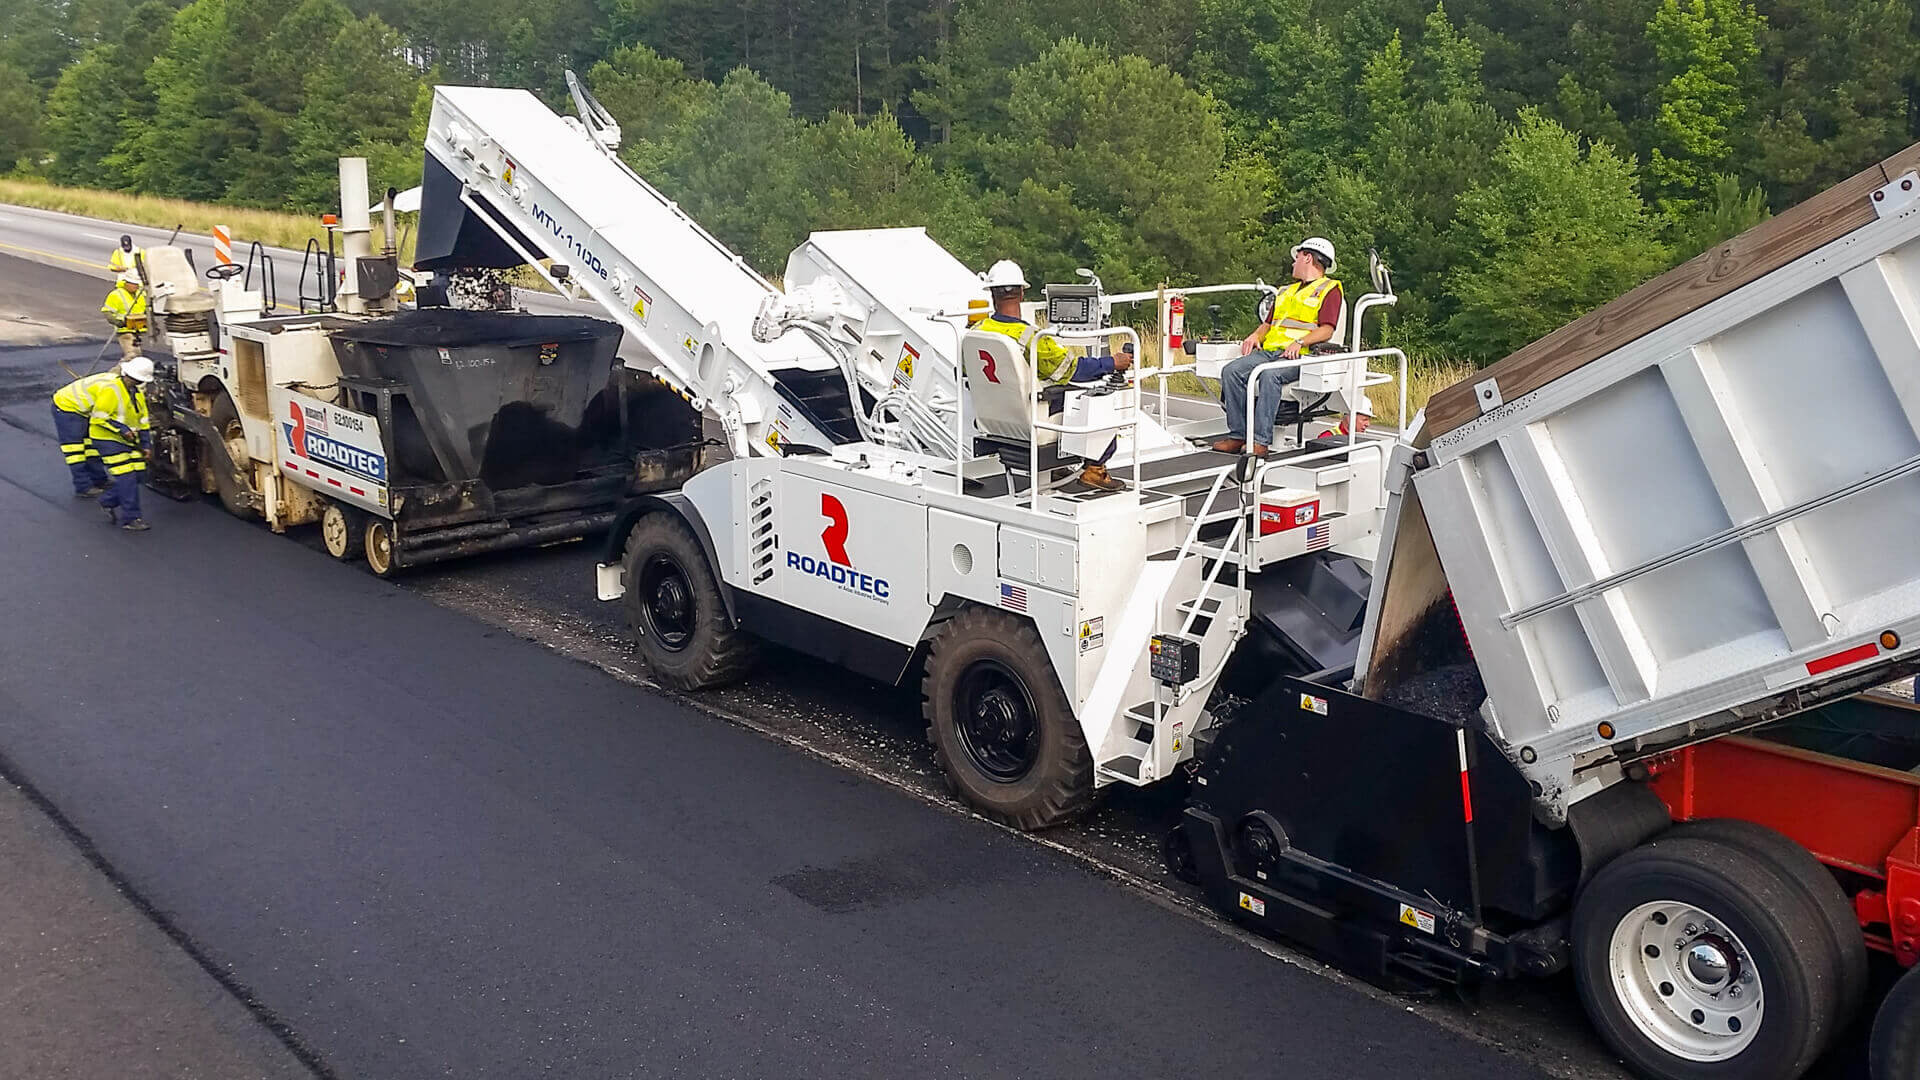 Roadtec MTV-1100 Material Transfer Vehicle working with a Roadtec paver